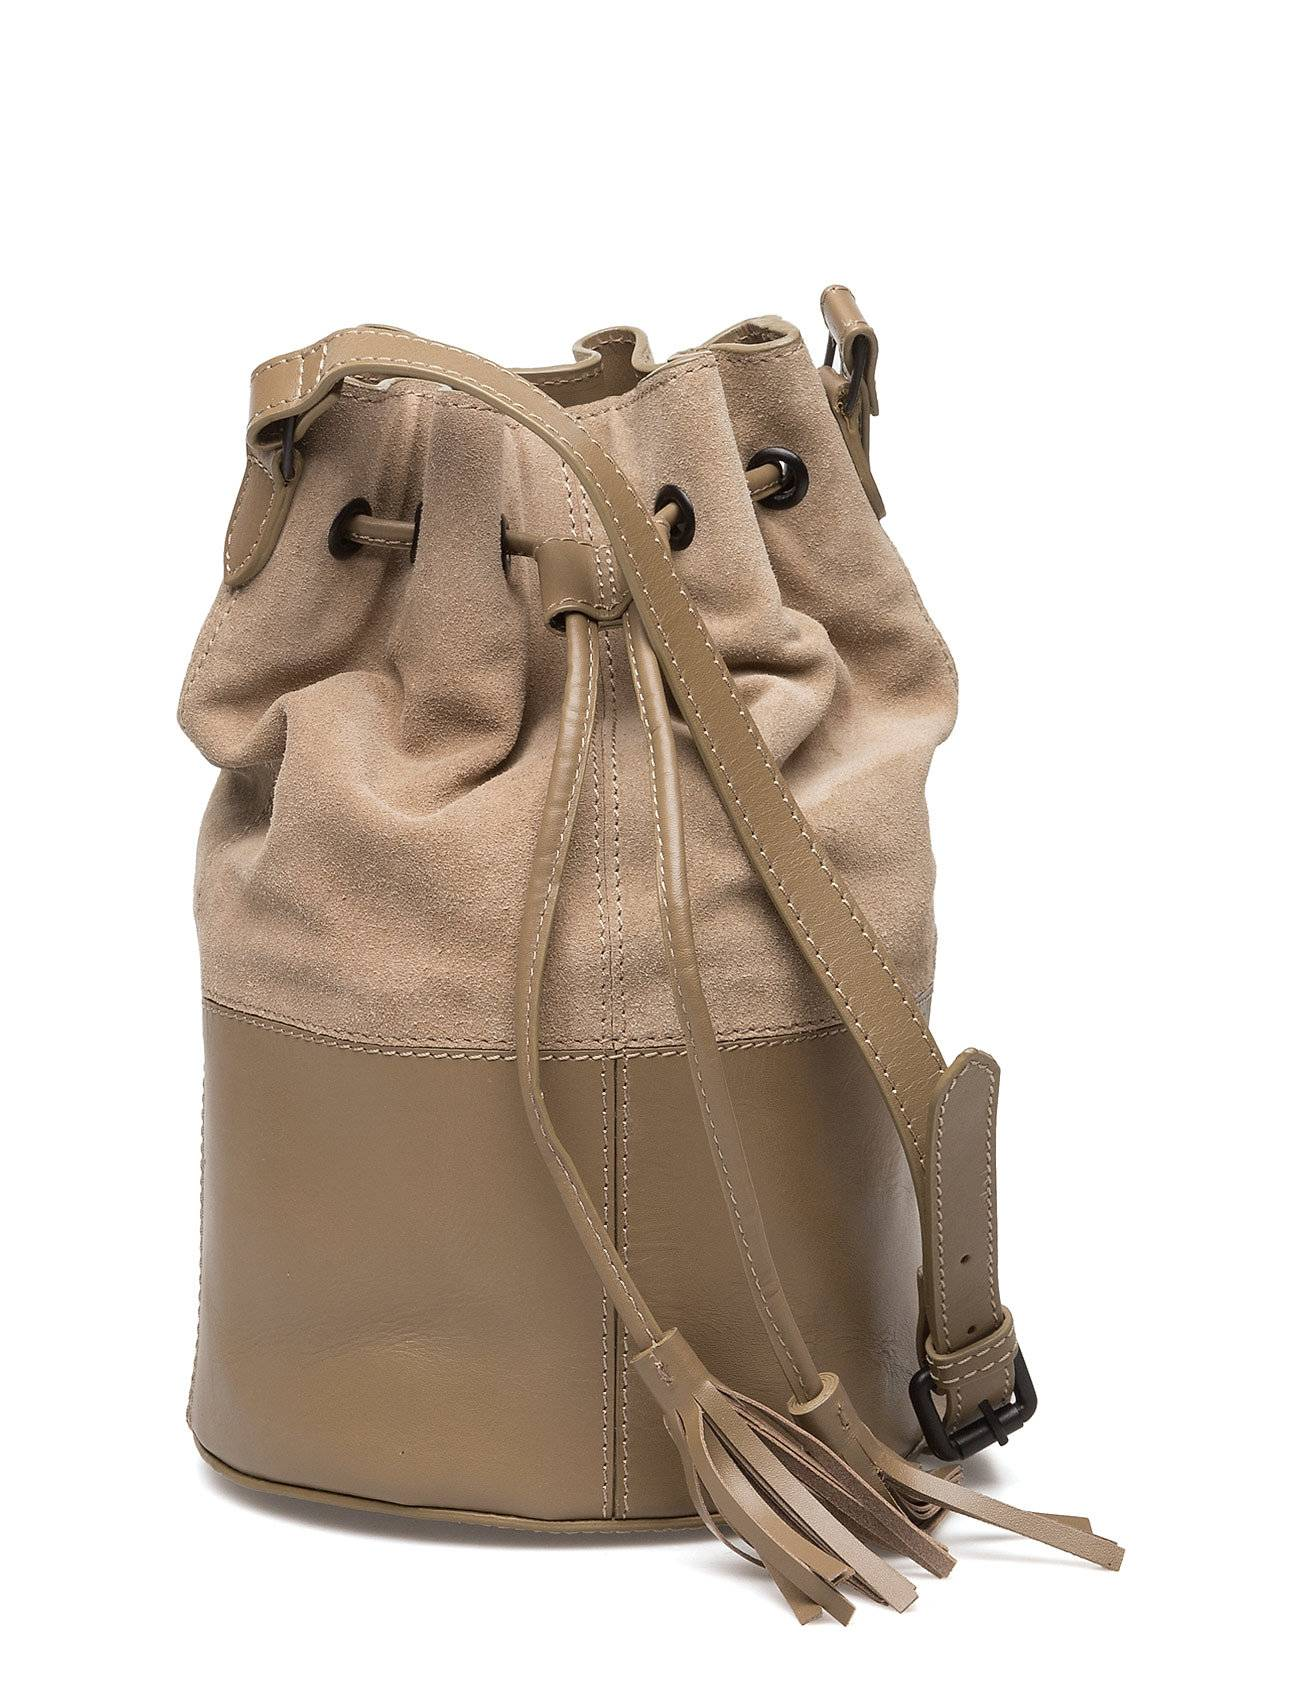 Twist & Tango Dakota Bucket Bag